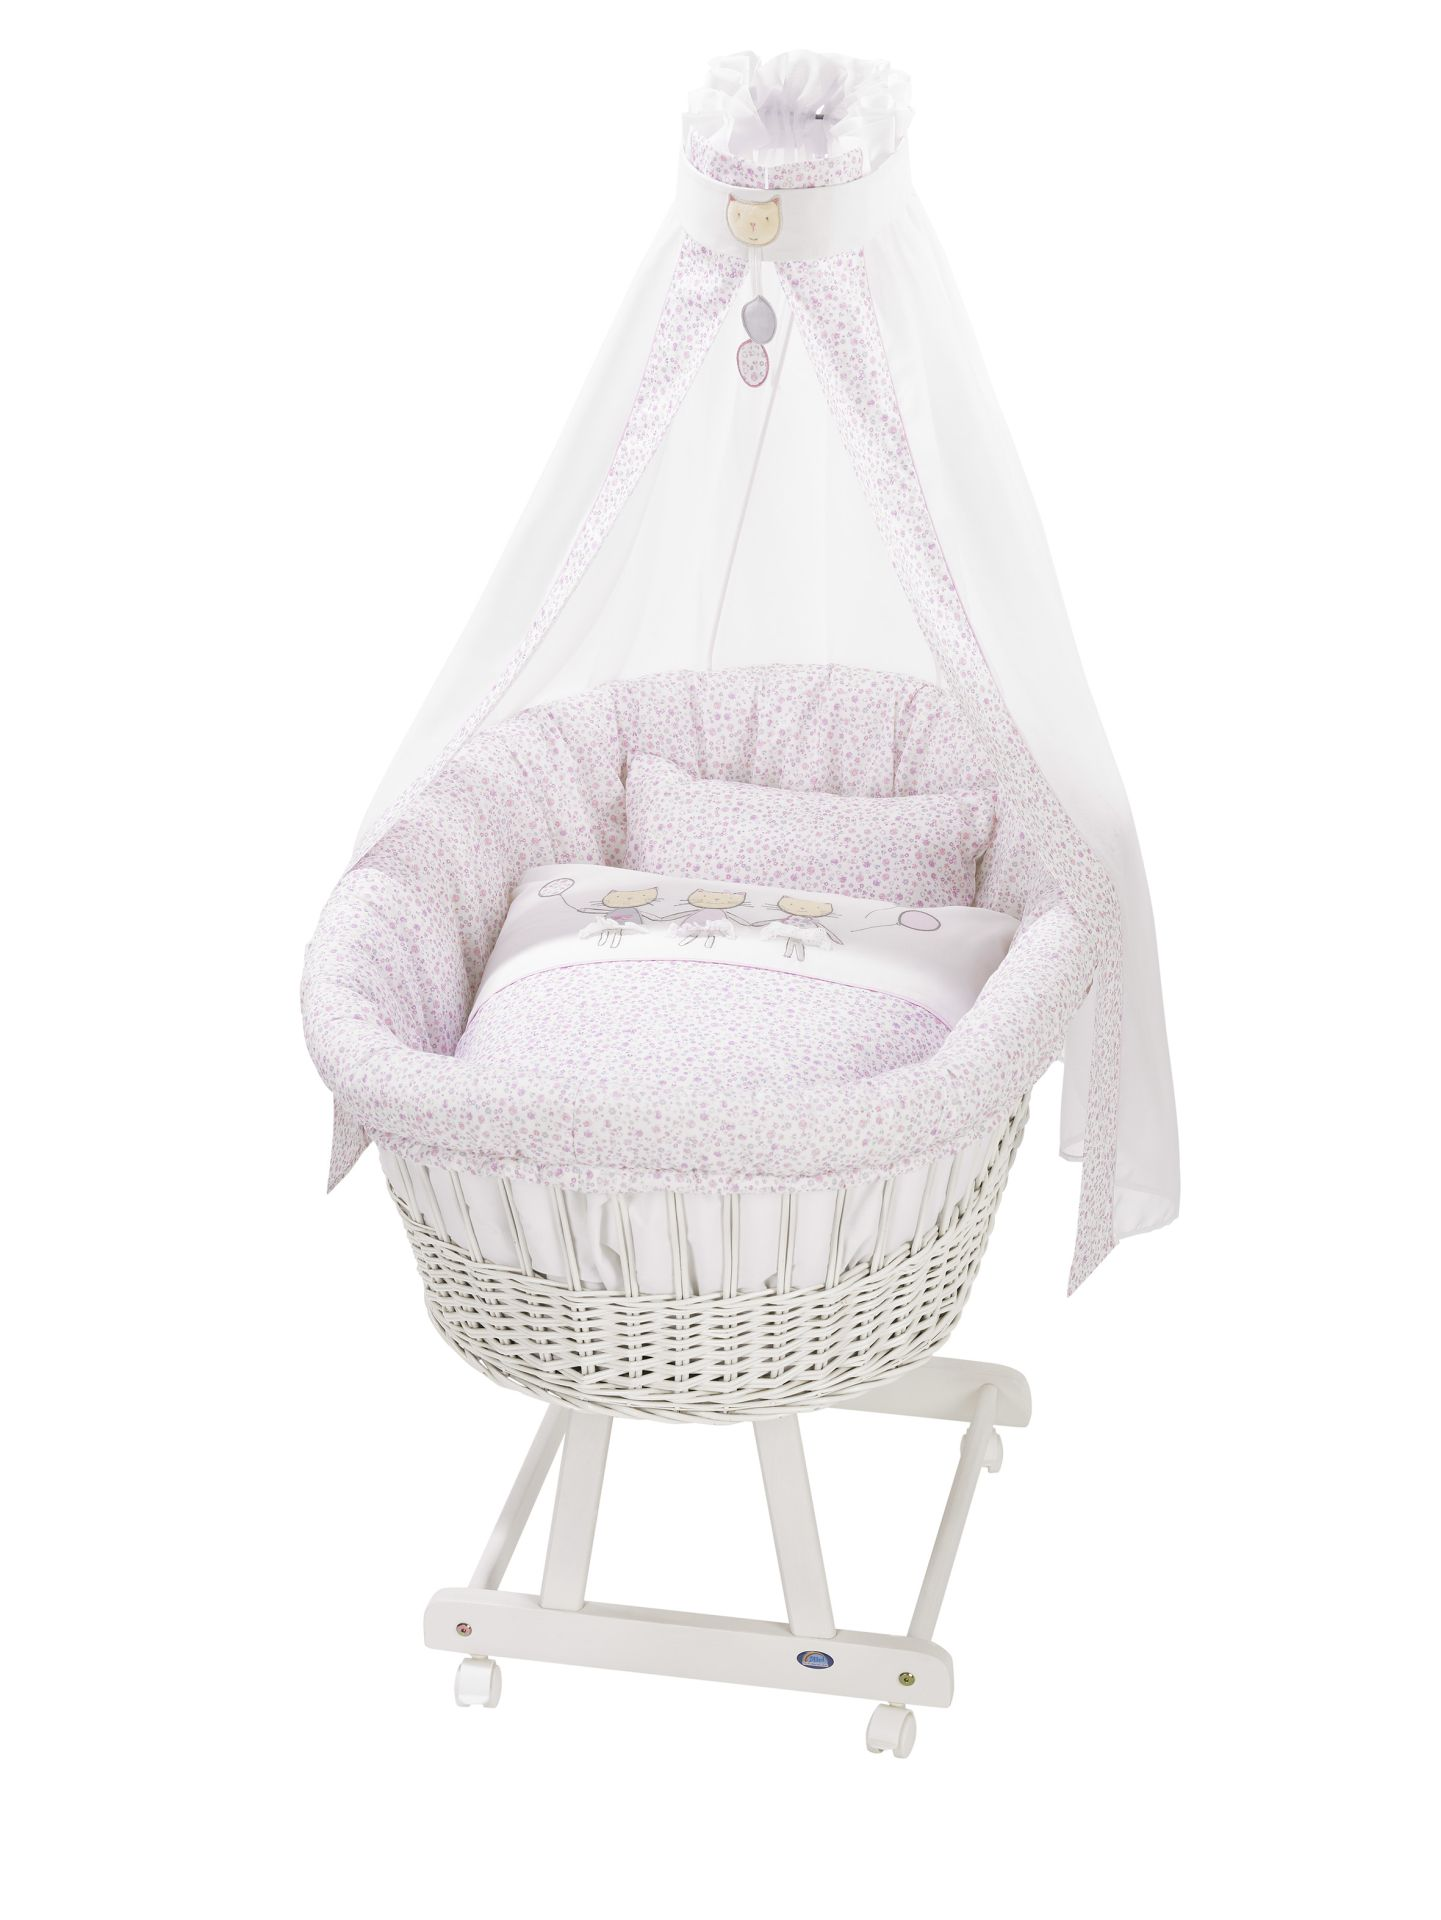 alvi complete set bassinet birthe with xl lying surface 2019 cats wei buy at kidsroom